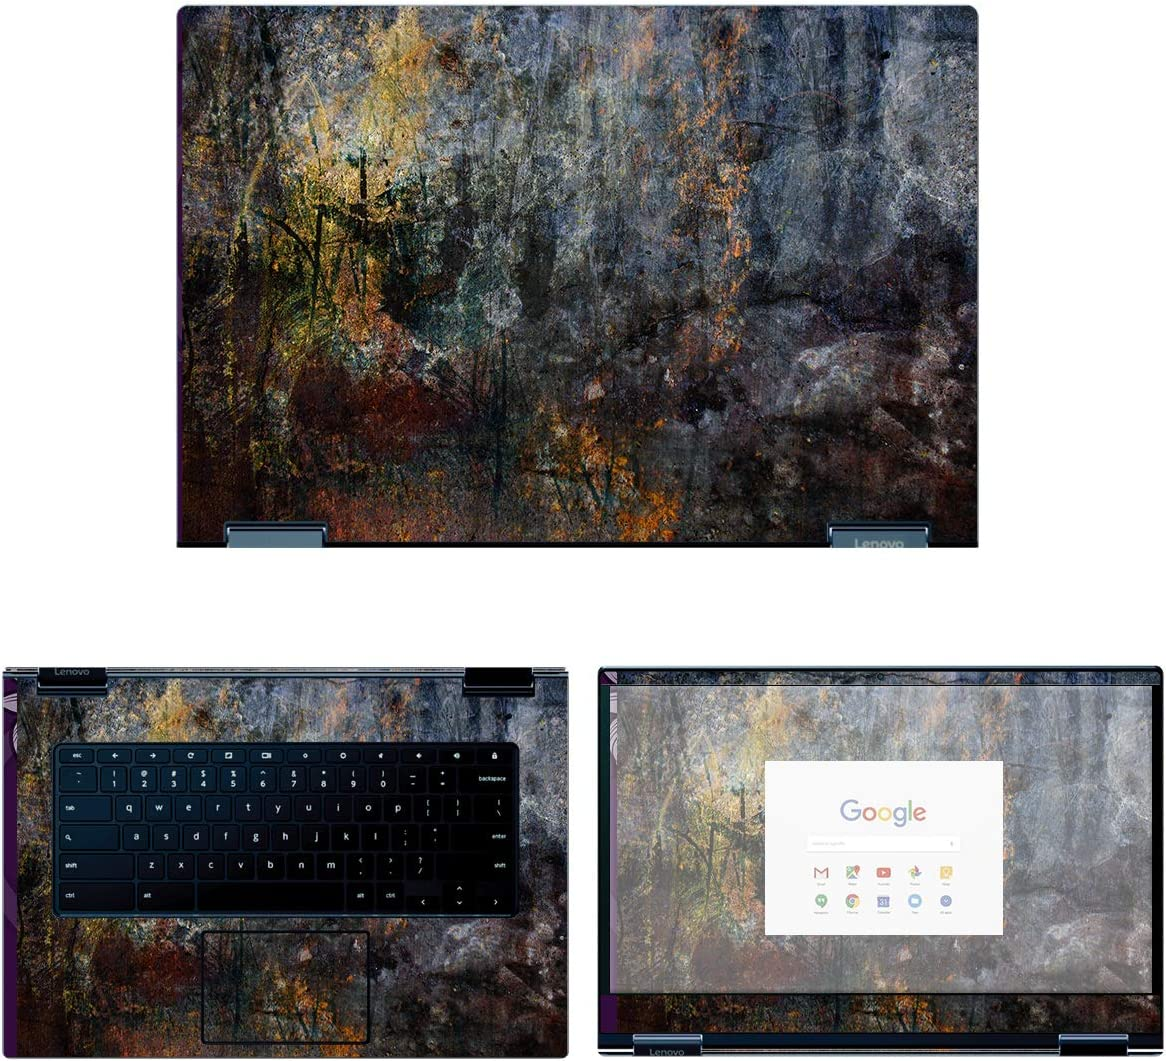 decalrus Large-scale sale - Protective Decal Skin Sticker ChromeB for 2021 Yoga Lenovo